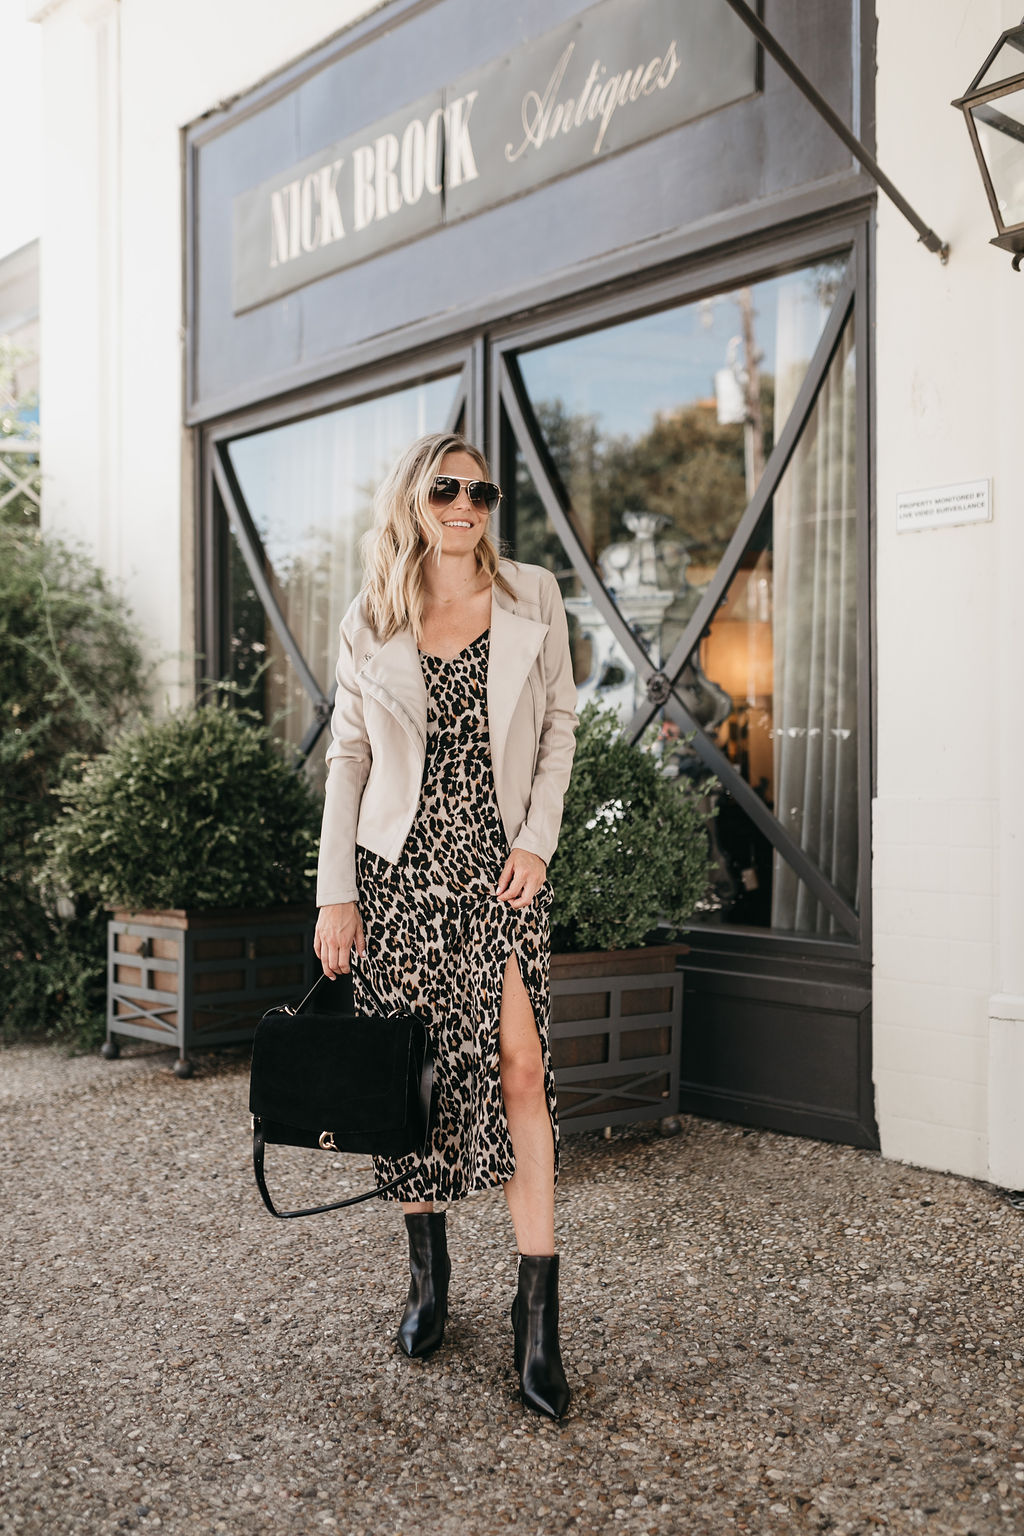 a woman in a leopard dress and leather boots